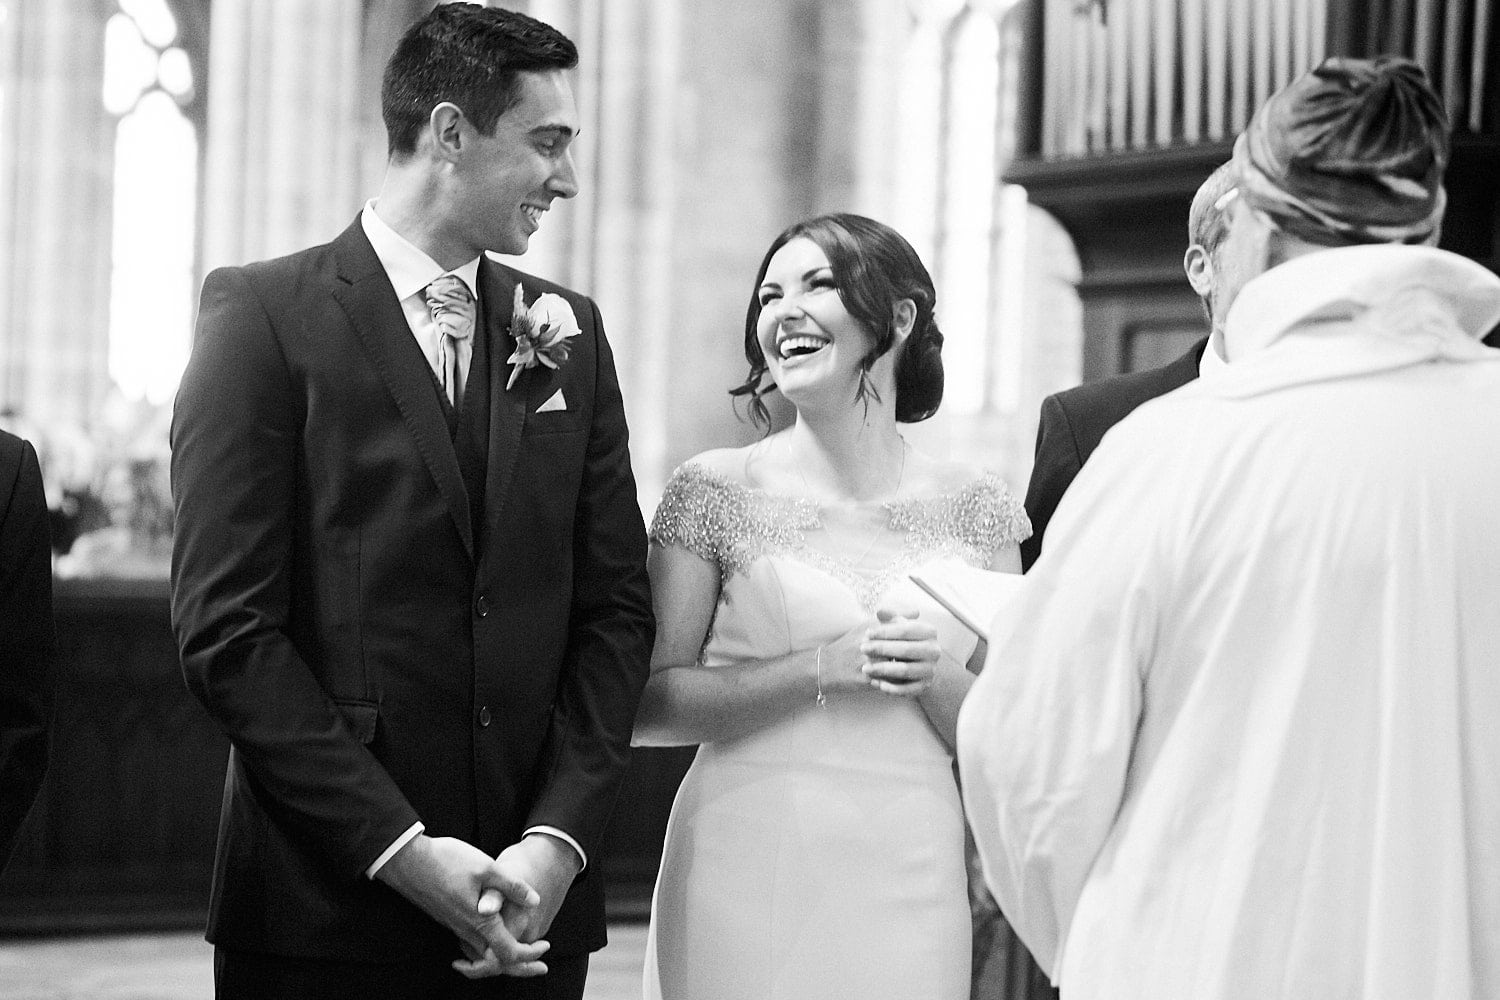 A bride and groom share a joke on their wedding day